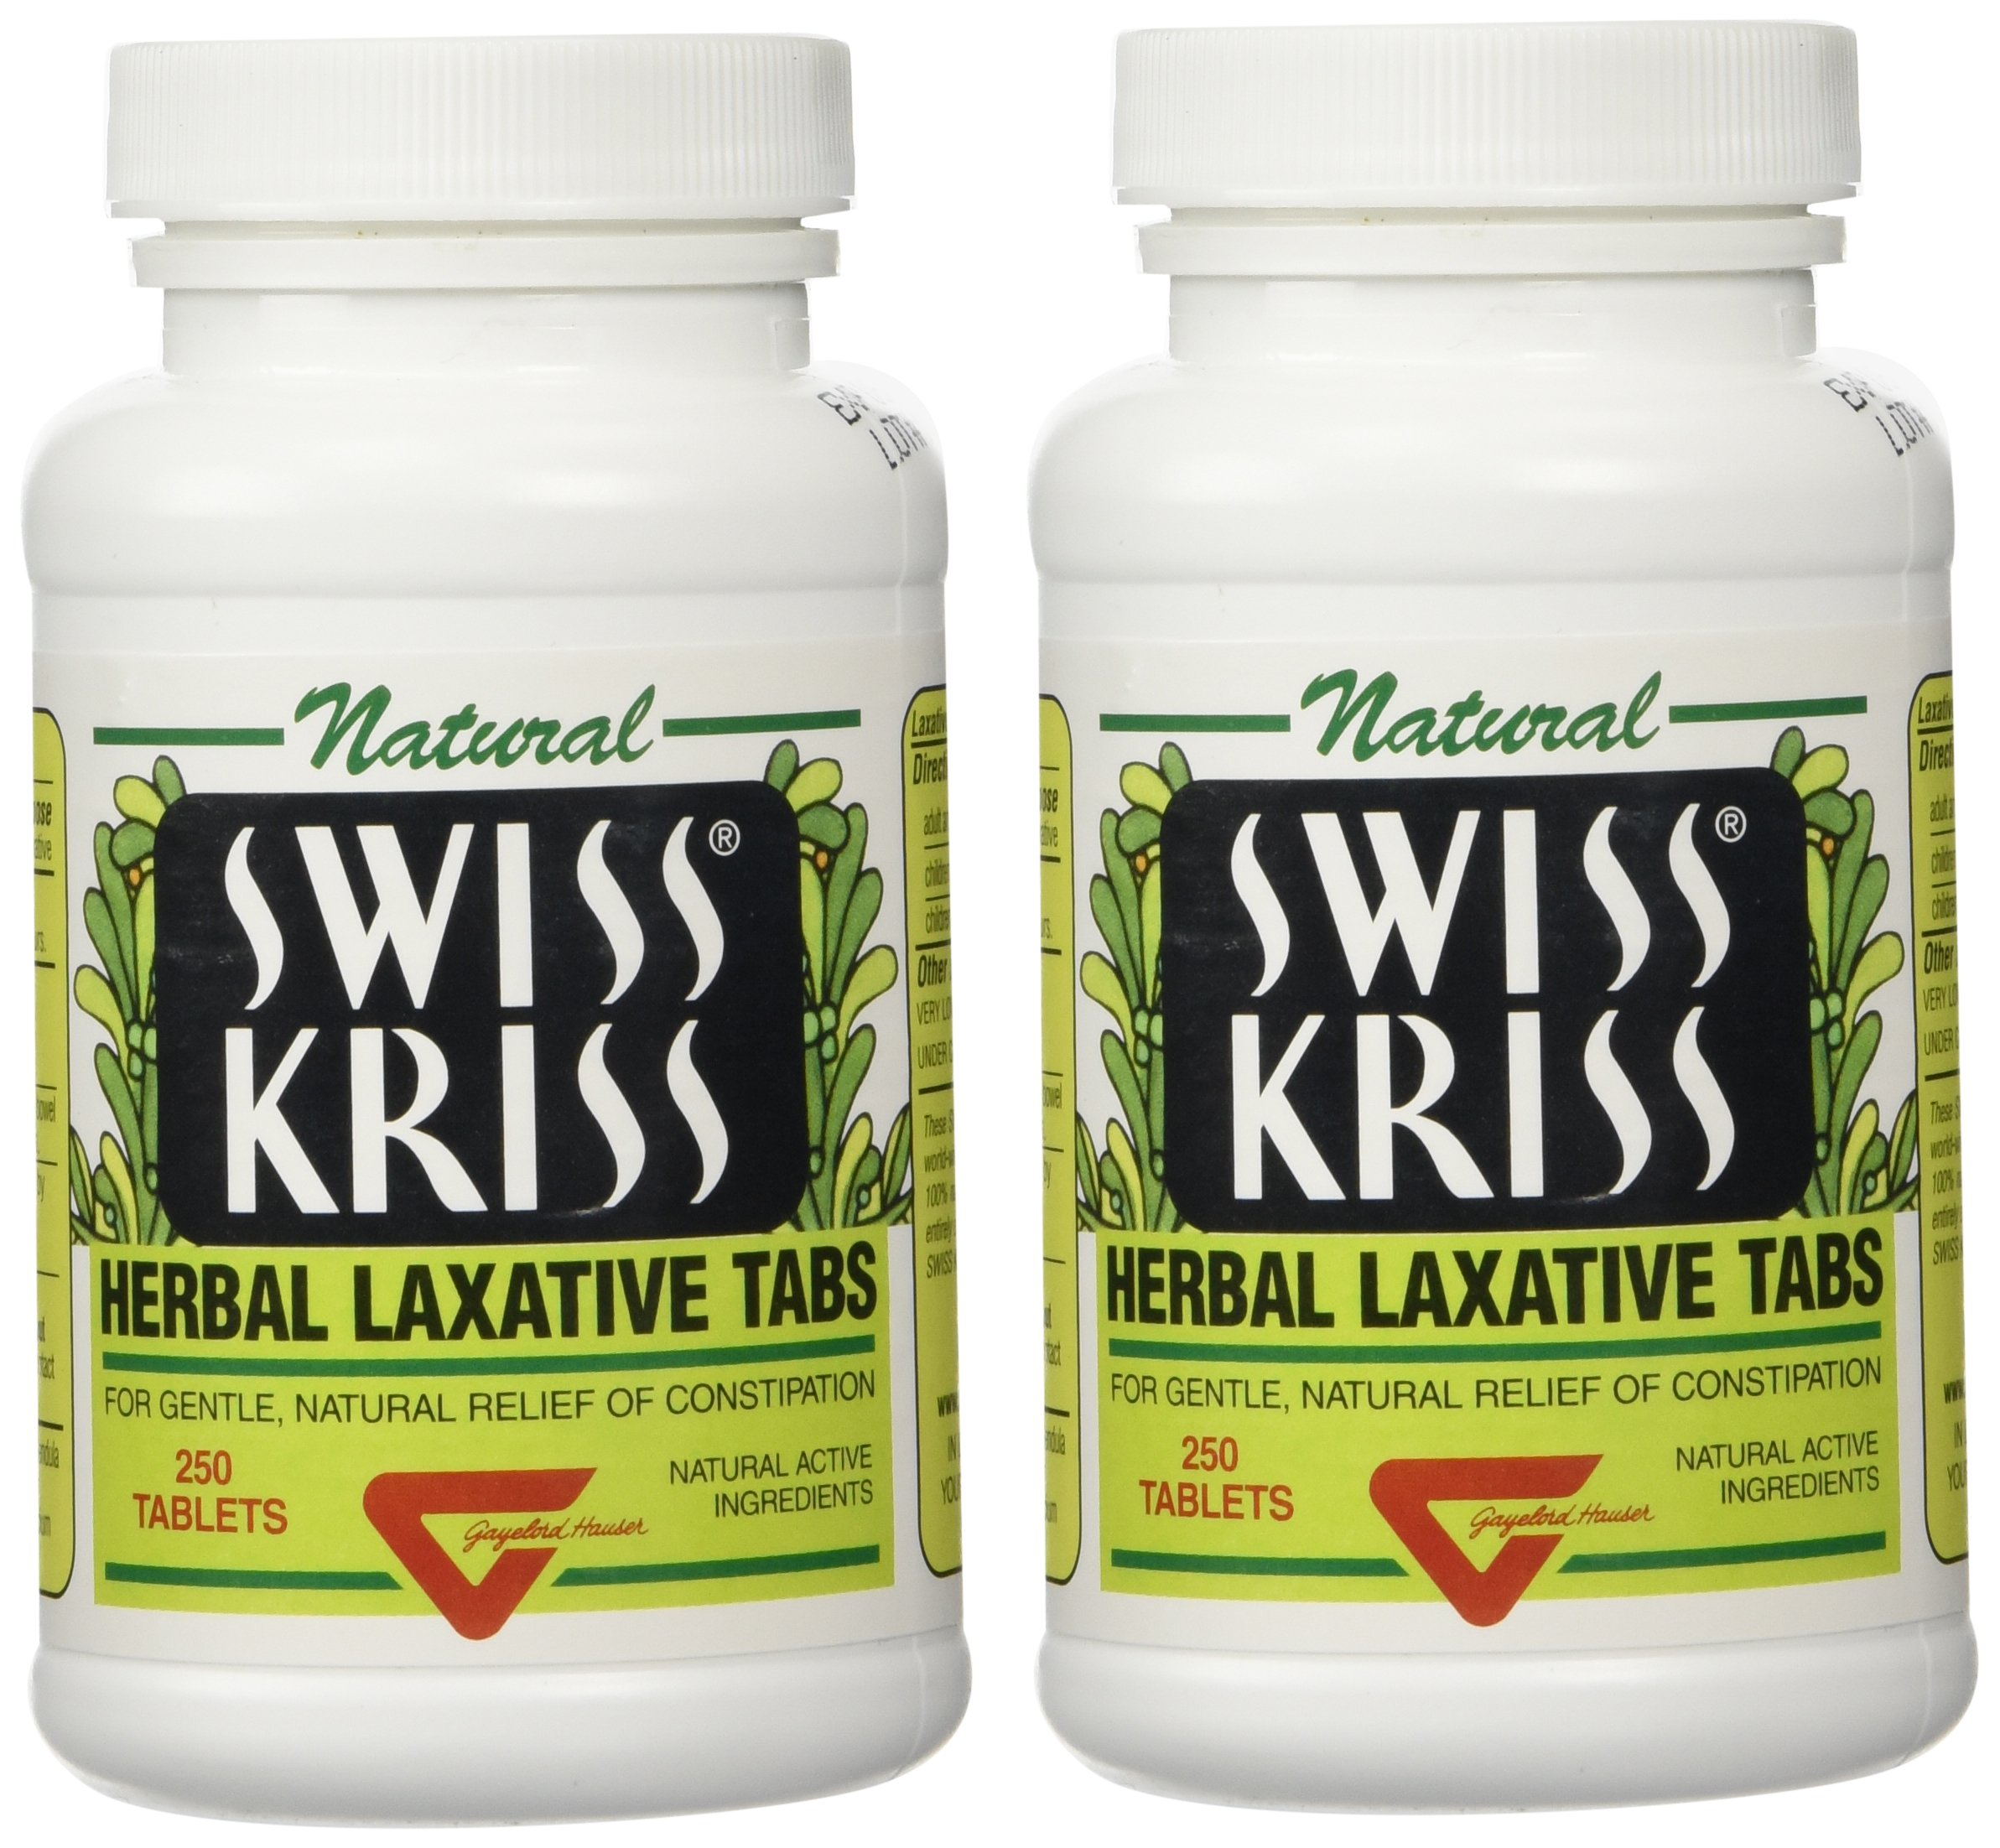 Swiss Kriss Herbal Laxative Tablets By Modern Products, 250 Count, Pack of 2